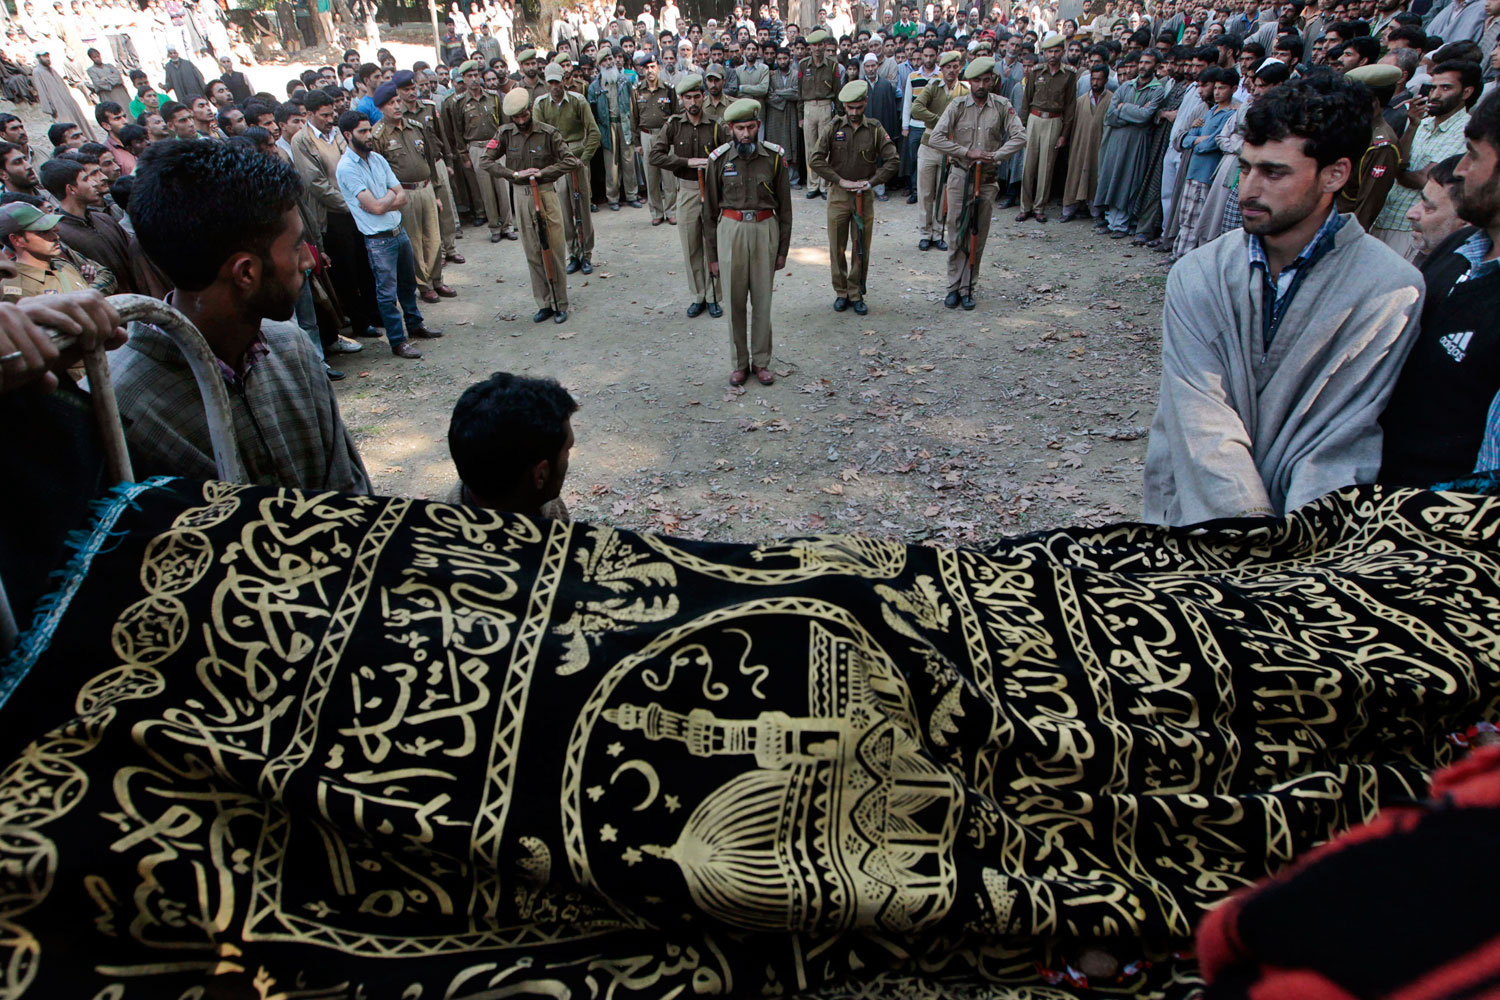 October 15, 2011. Police in Ghariand, India, pay their last respects to fellow officer Sajjad Ahmad Parray at his funeral procession. Parray died from wounds he sustained in a suspected militant attack a day earlier.